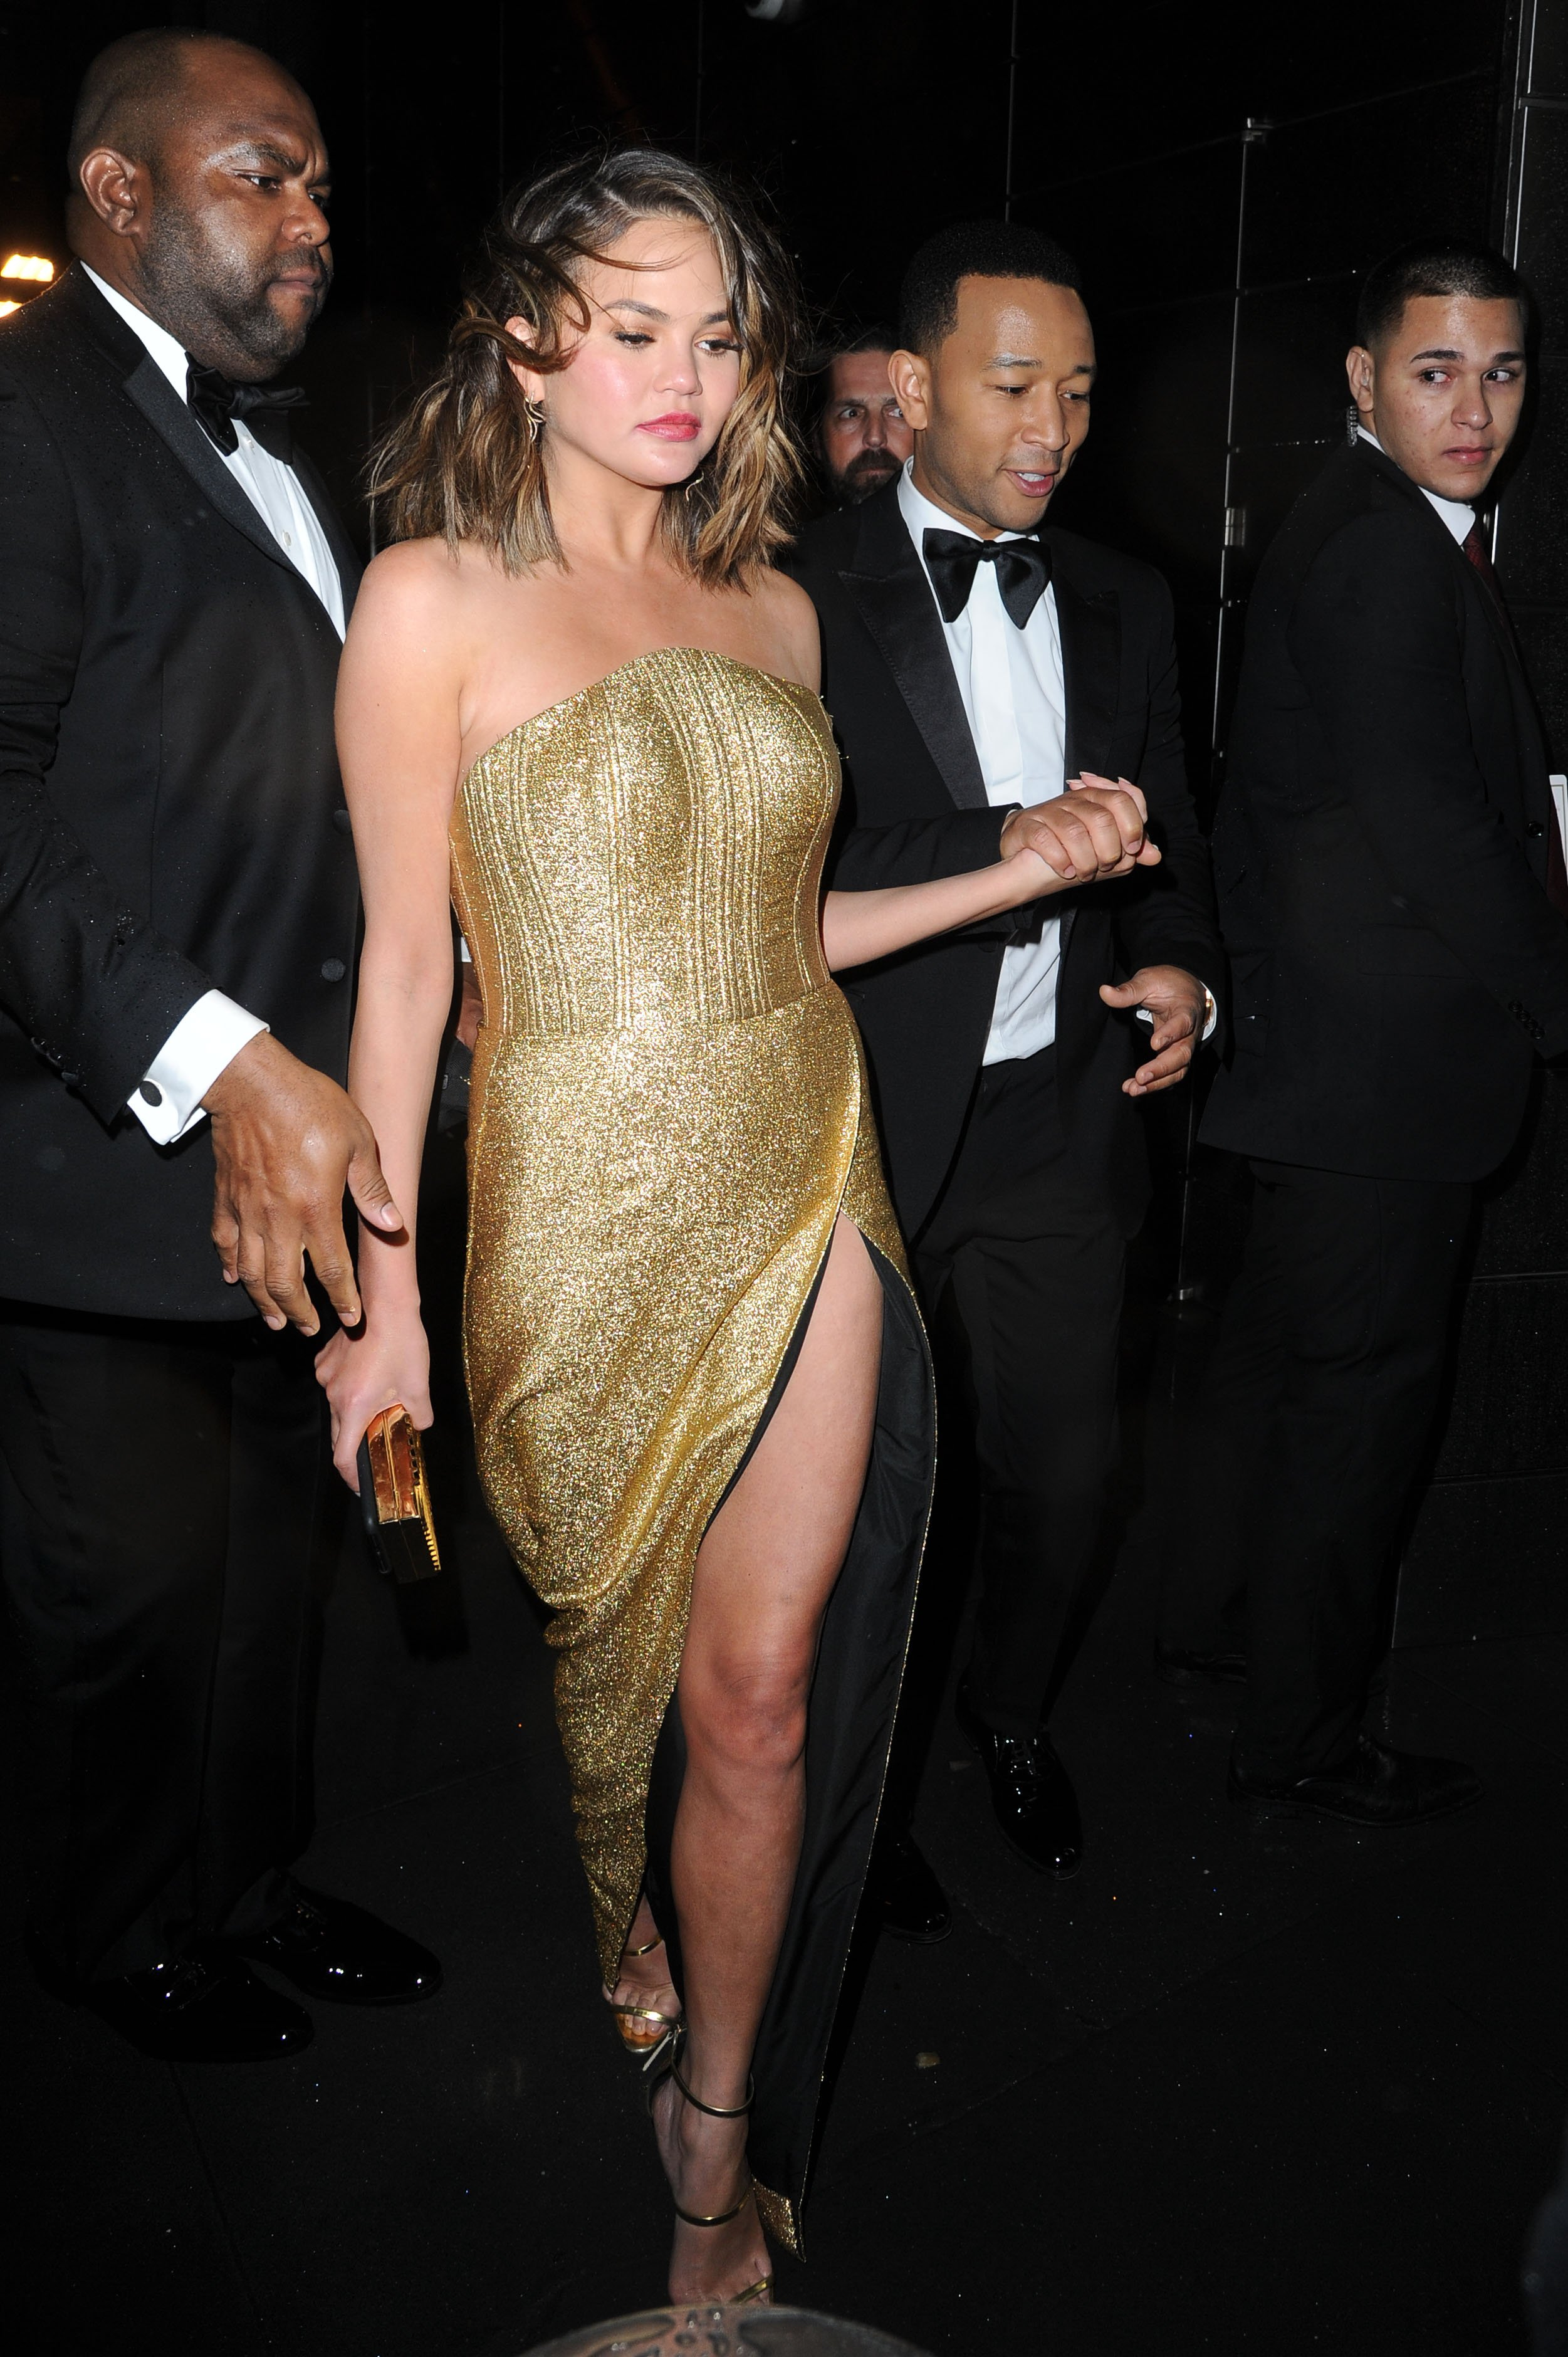 MANHATTAN, NY - APRIL 25, 2017: Chrissy Teigen and John Legend seen leaving Time 100 Gala on APRIL 25, 2017 in New York, Image: 330308697, License: Rights-managed, Restrictions: *US MAGAZINES-PLEASE REPORT USAGE*  **FEE MUST BE AGREED PRIOR TO USAGE** ***E-TABLET/IPAD & MOBILE PHONE APP***, Model Release: no, Credit line: Profimedia, Buzzfoto